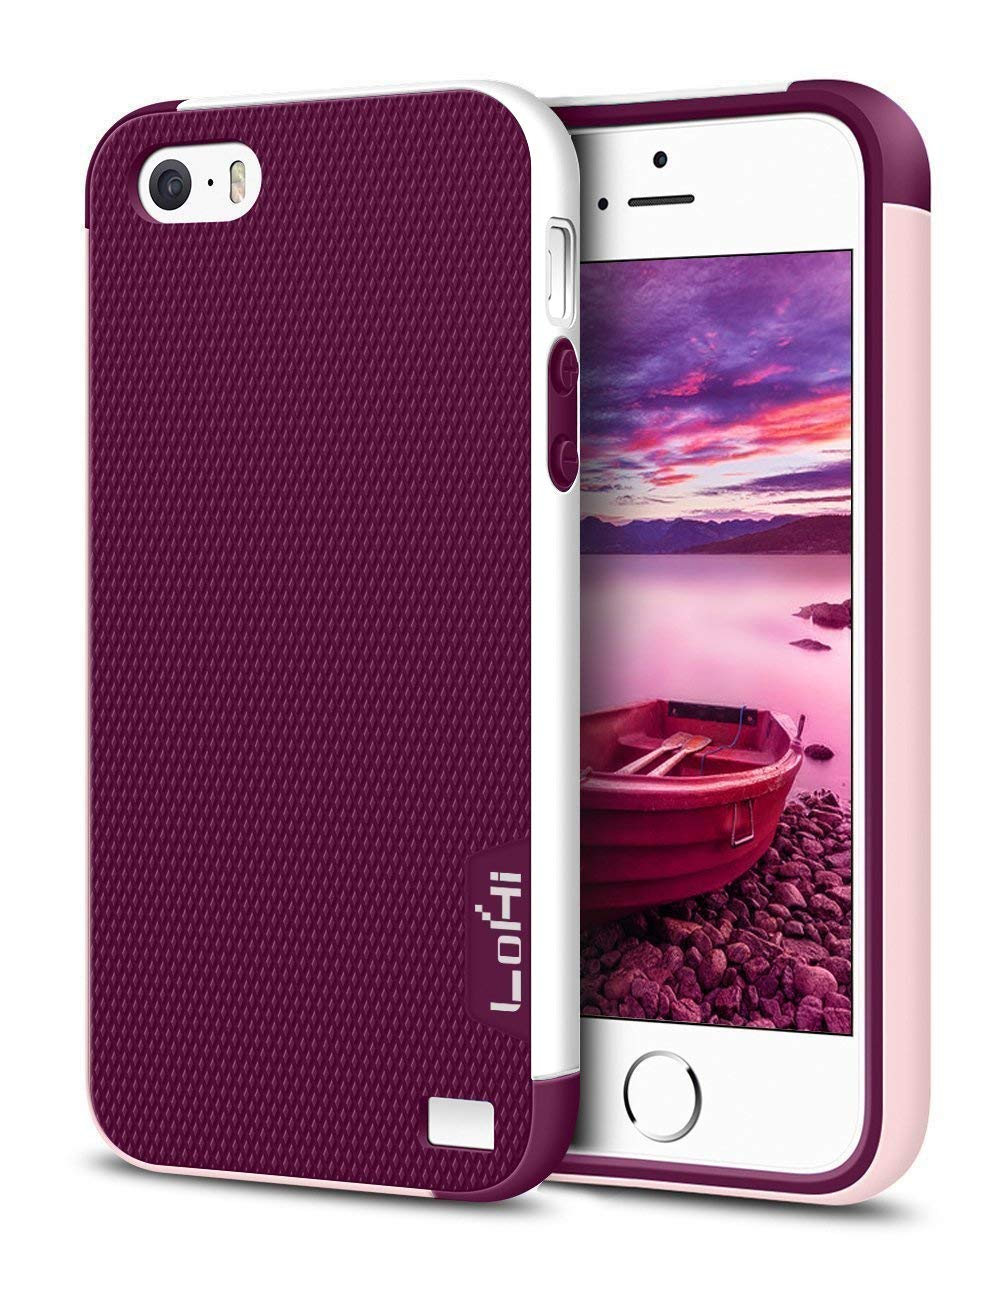 iPhone 5S Case, LoHi Apple iPhone SE Case [Dual Protection] Anti-Scratch Shockproof Bumper Case for iPhone SE 5S 5 - Wine Red